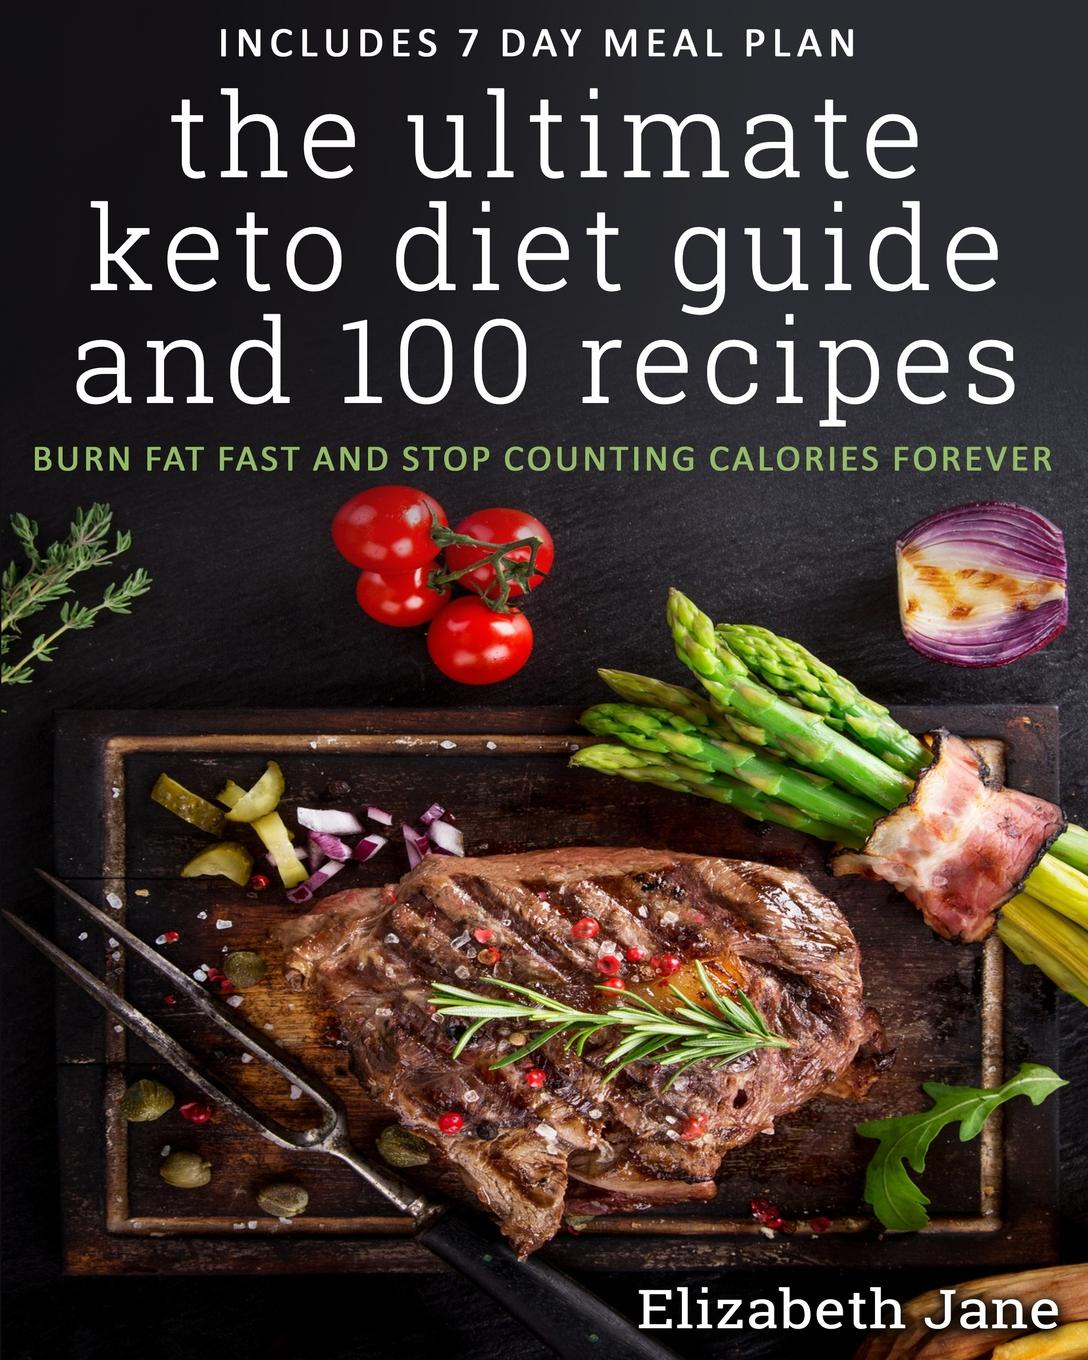 Elizabeth Jane The Ultimate Keto Diet Guide & 100 Recipes. Burn Fat Fast & Stop Counting Calories Forever how to sparkle at counting to 10